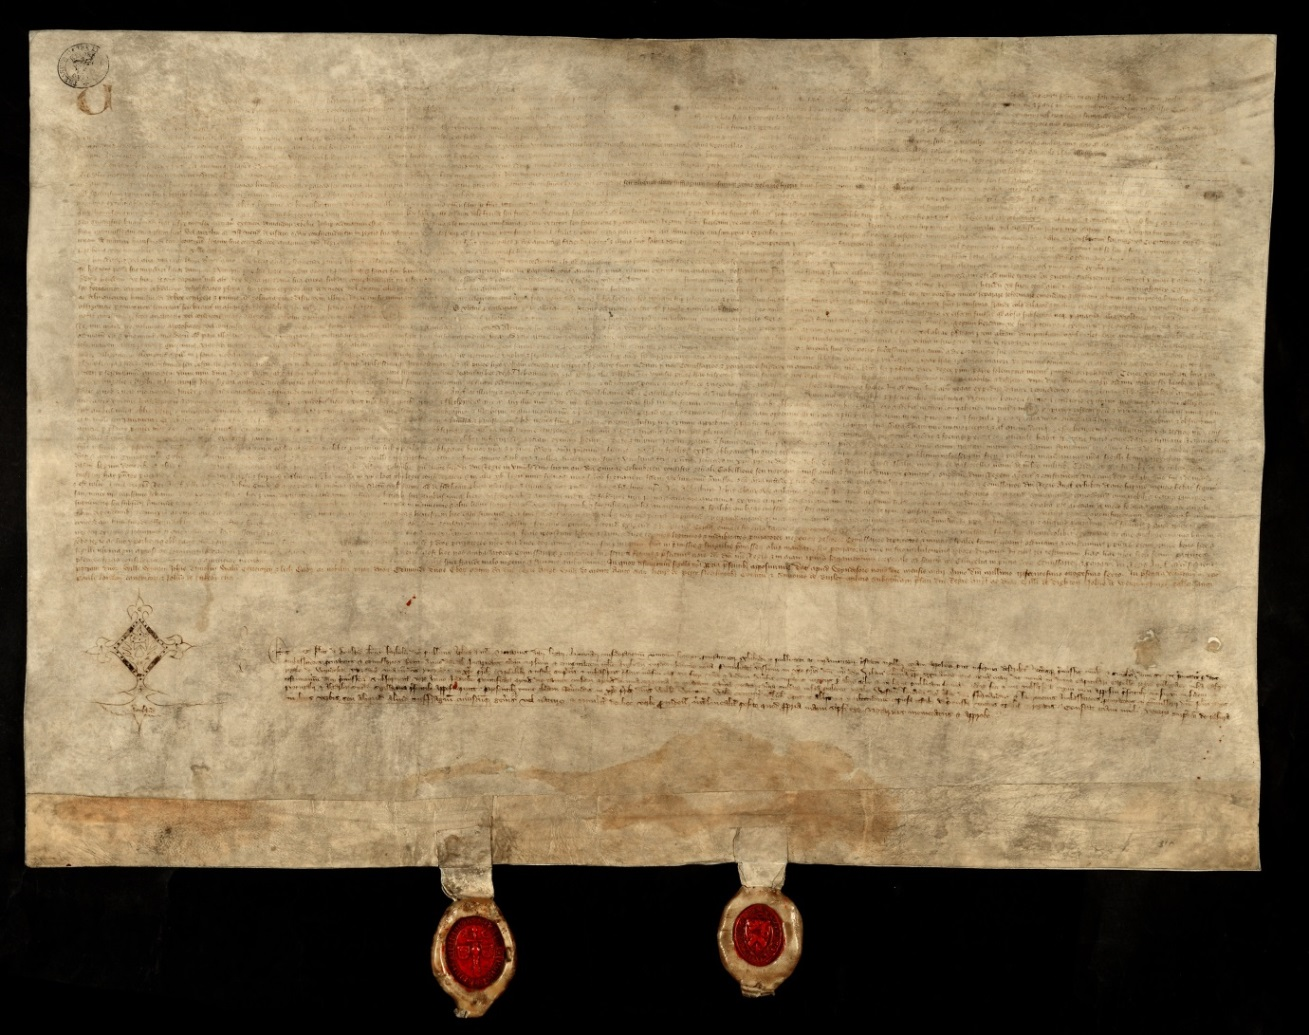 The Treaty of Windsor sealed on 9th May 1386 (The National Archives: E 30